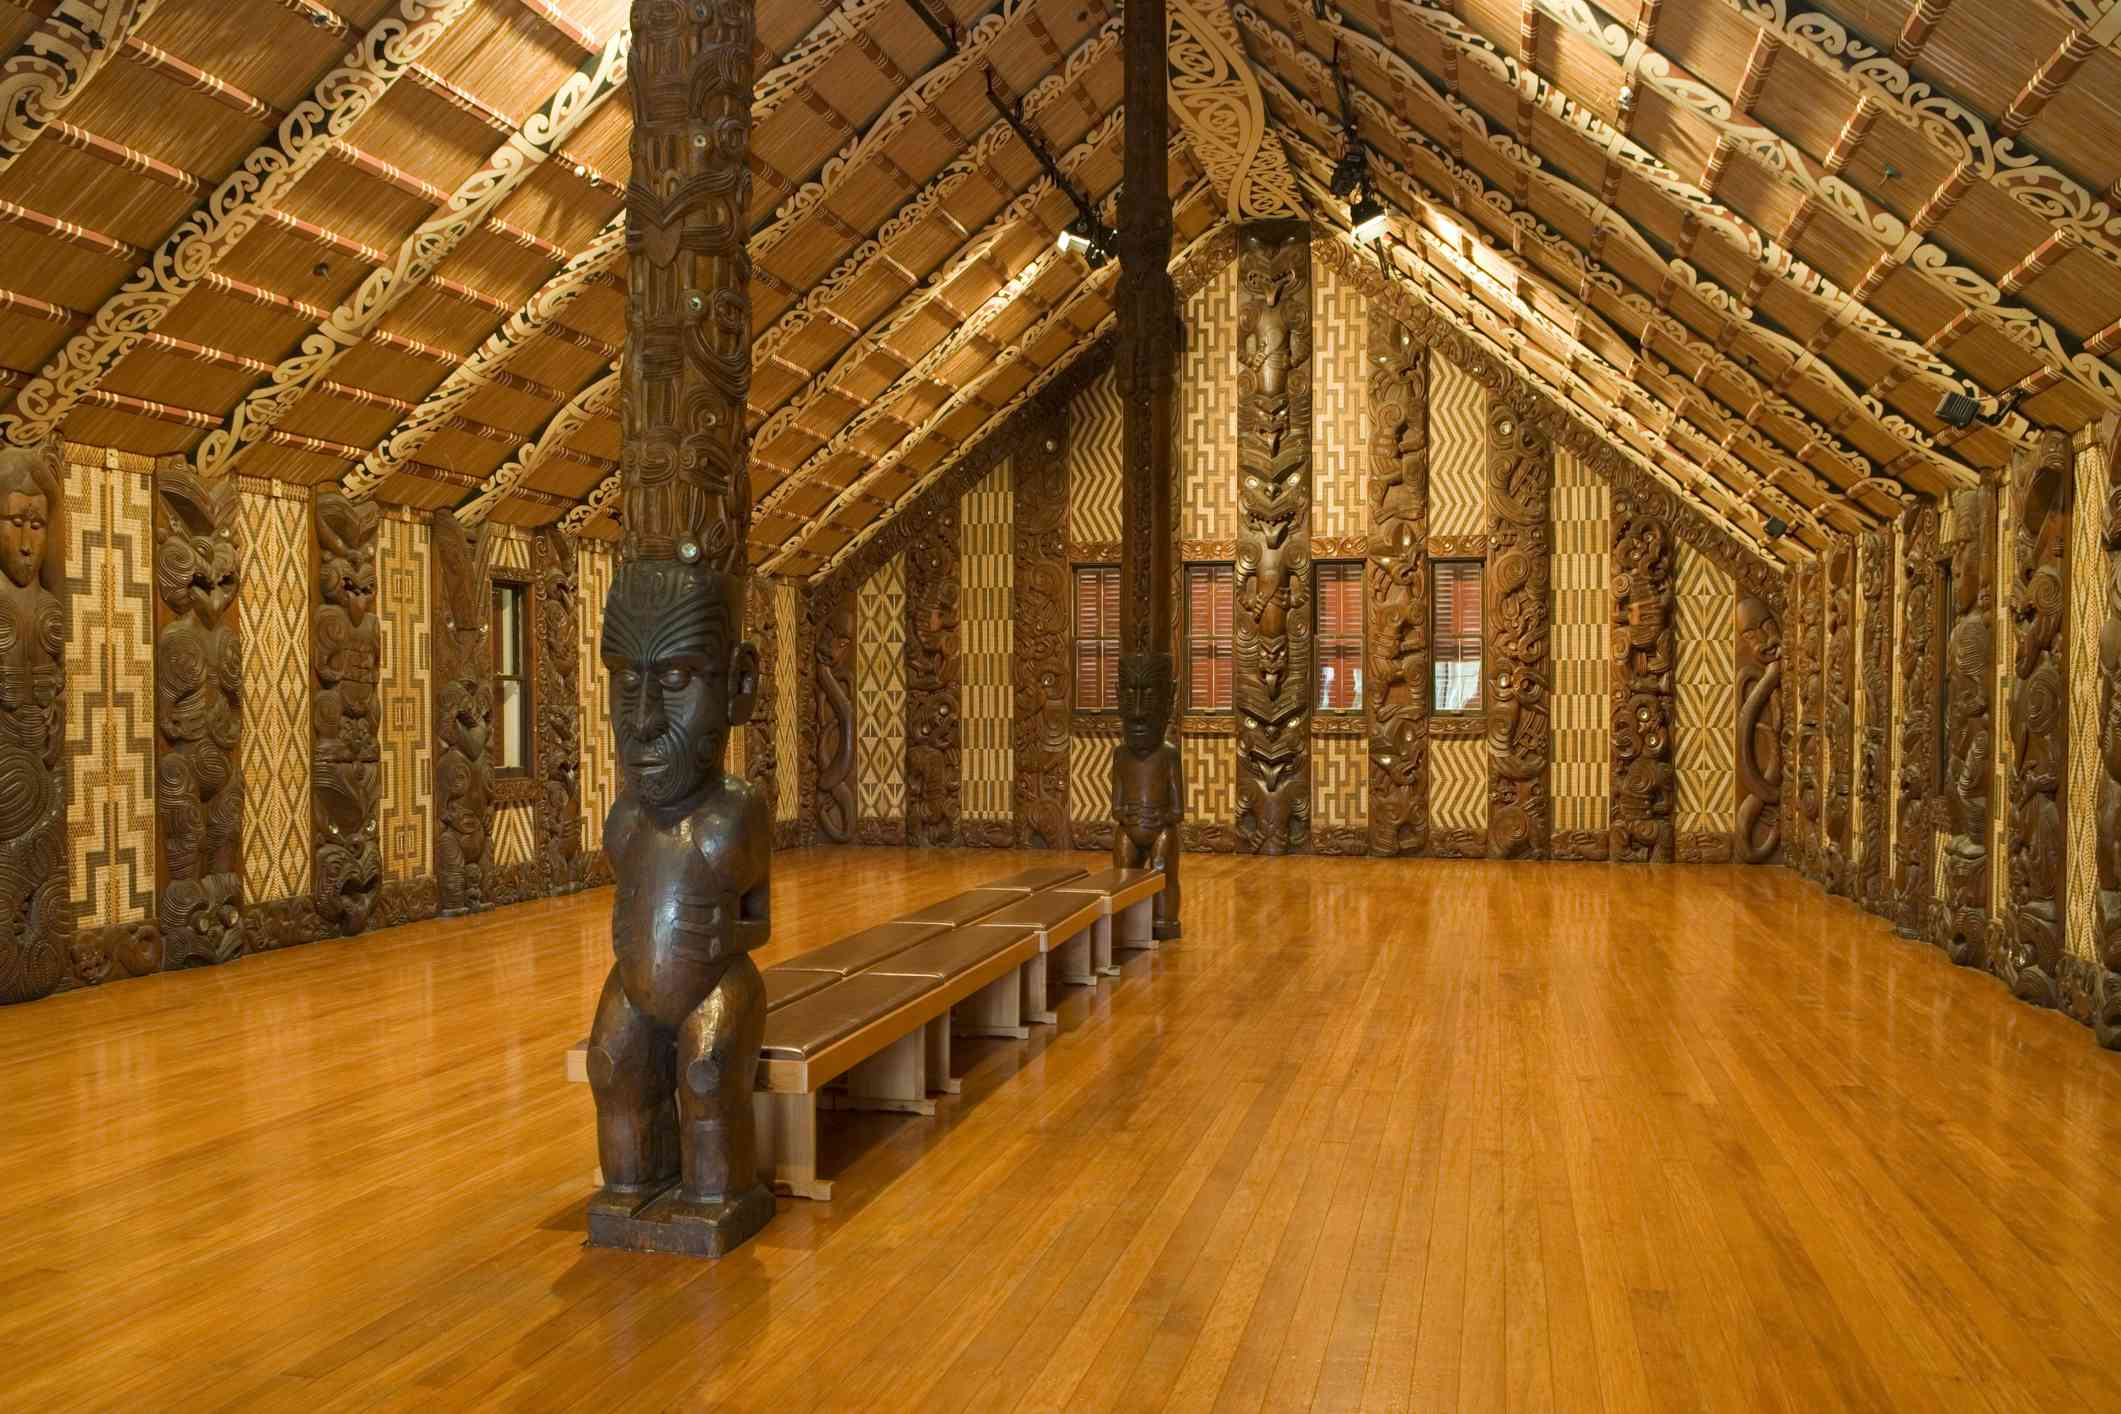 Maori carvings inside a building with polished wooden floors